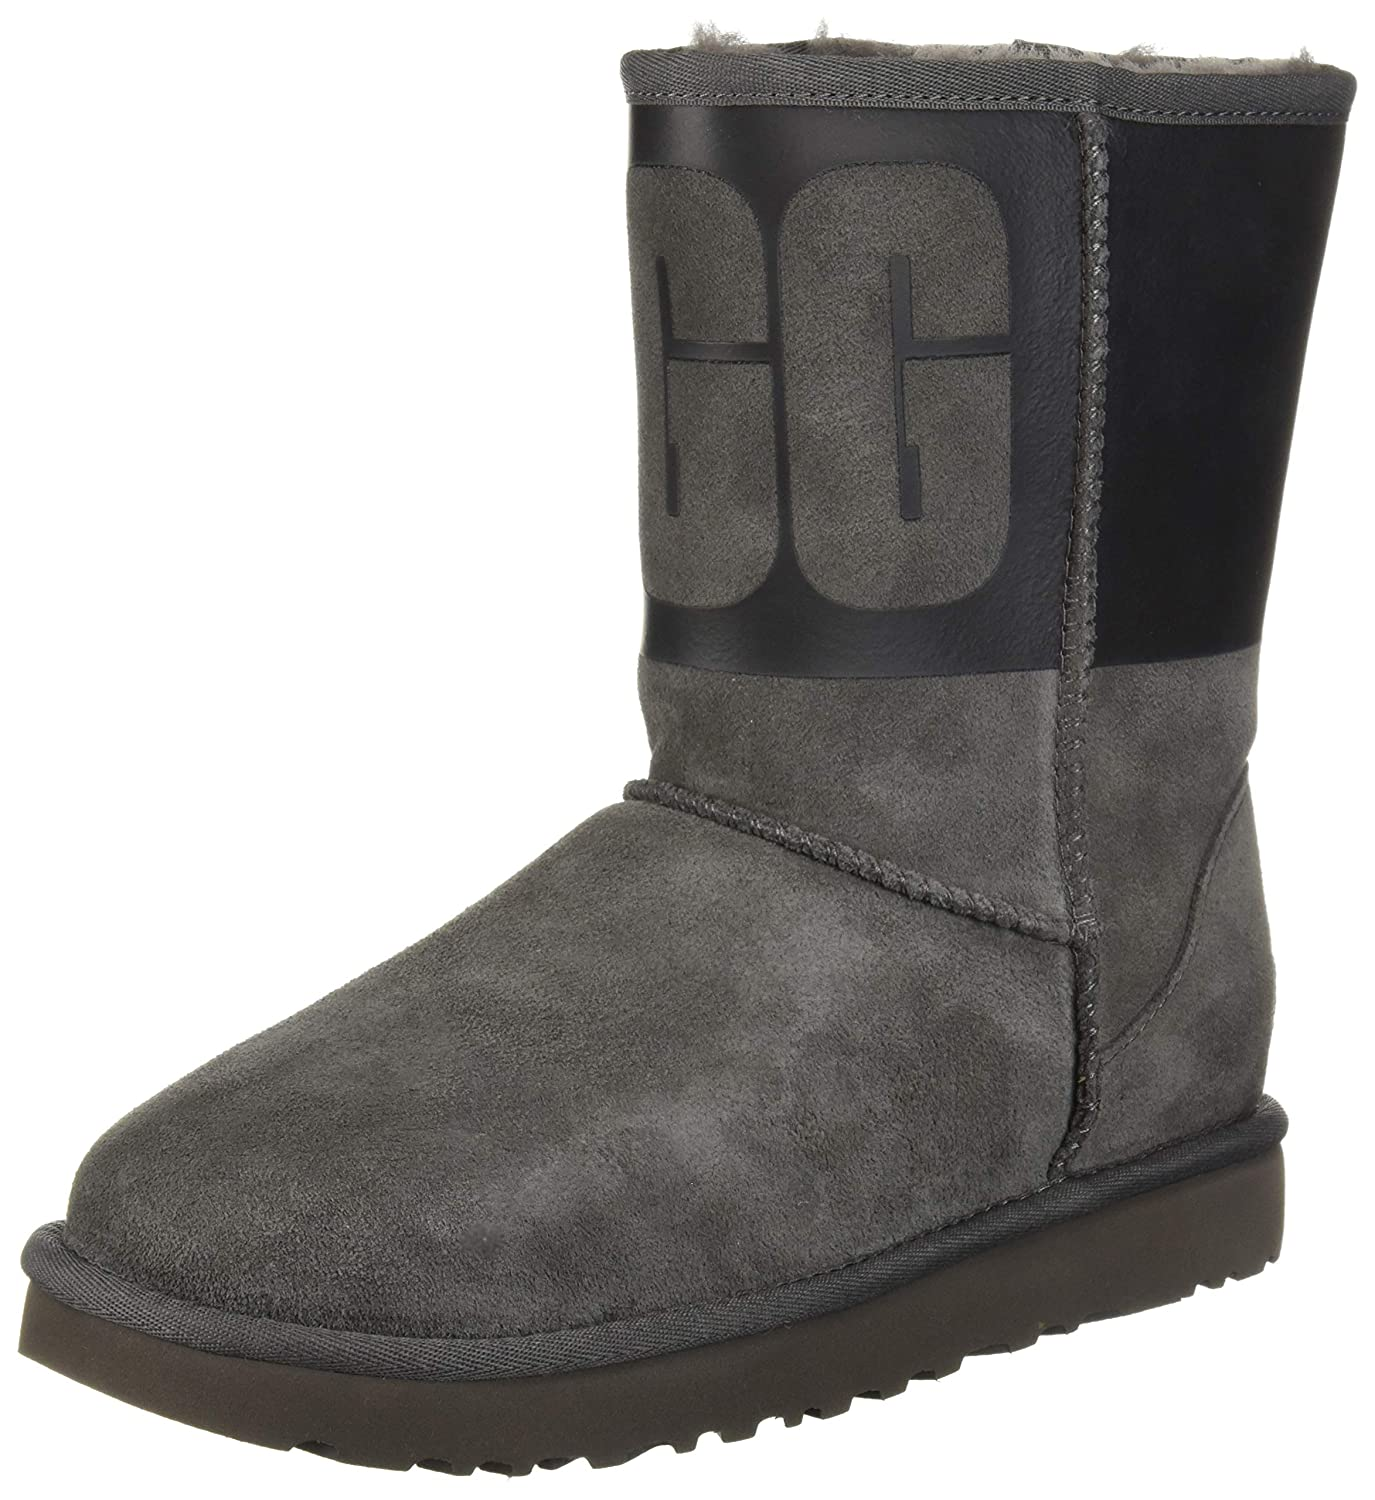 c0a4f95b426 UGG Women's W Classic Short UGG Rubber Fashion Boot